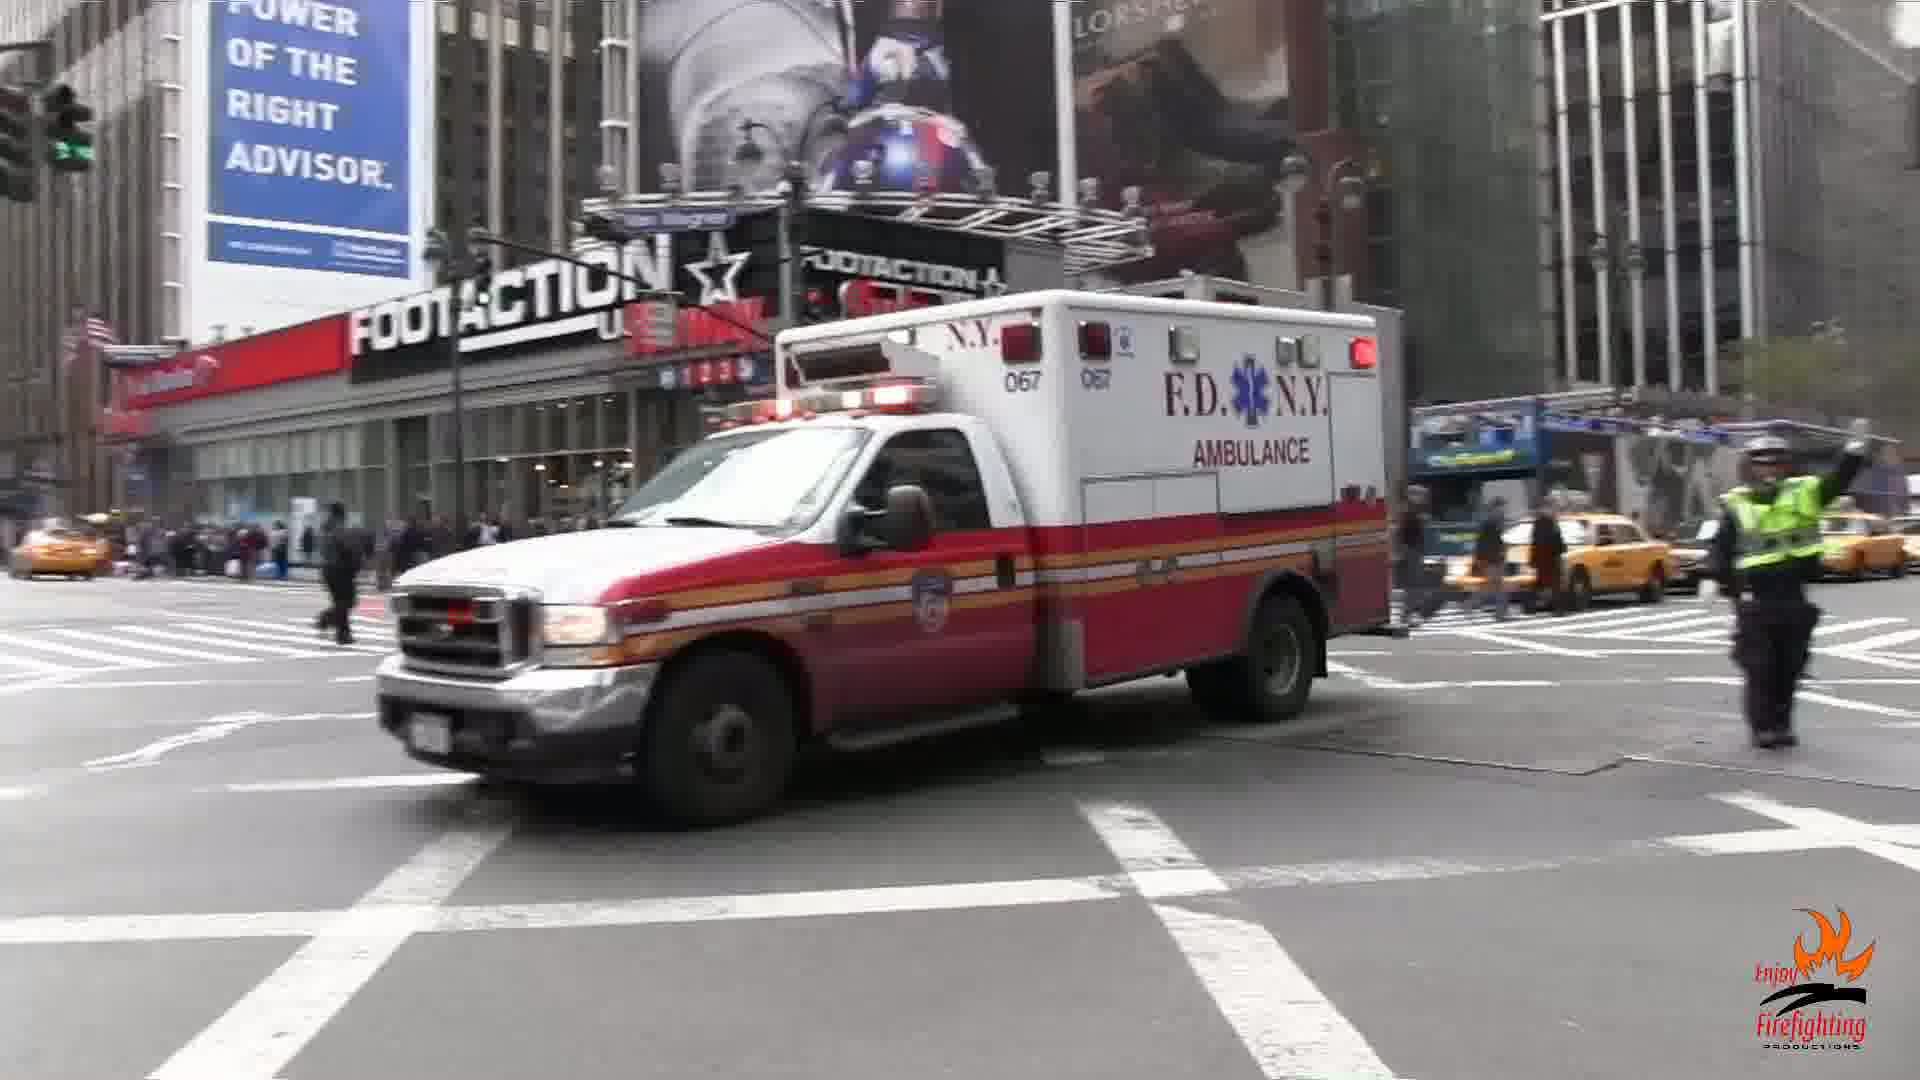 Ambulance 067 + Engine 1 FDNY (collection)